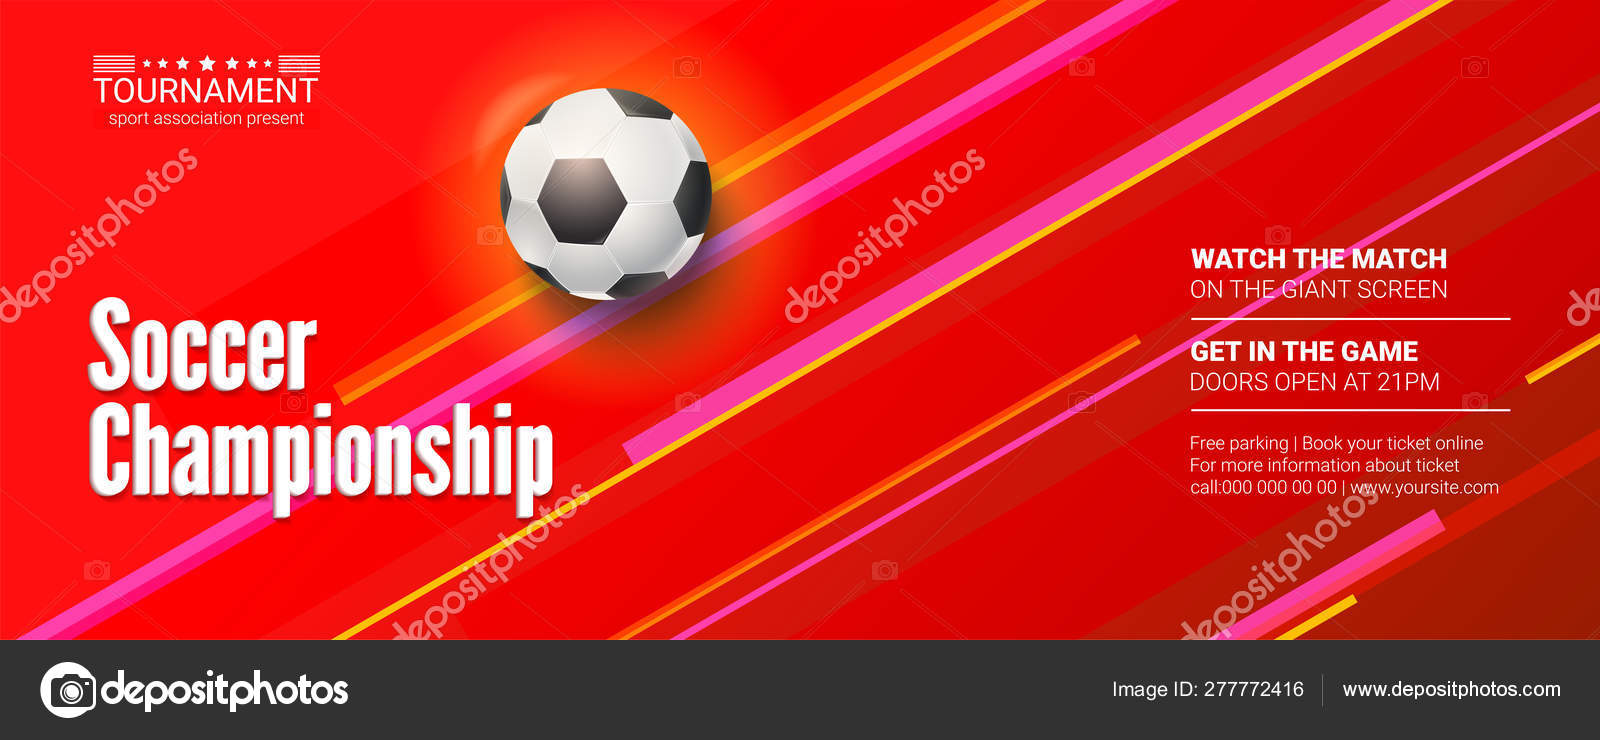 Vector Banner For The Soccer Championship Stylish Dynamic Background With Realistic Three Dimensional Ball For Play In Football Template For Poster For Sport Events Stock Vector C Master Erik 277772416